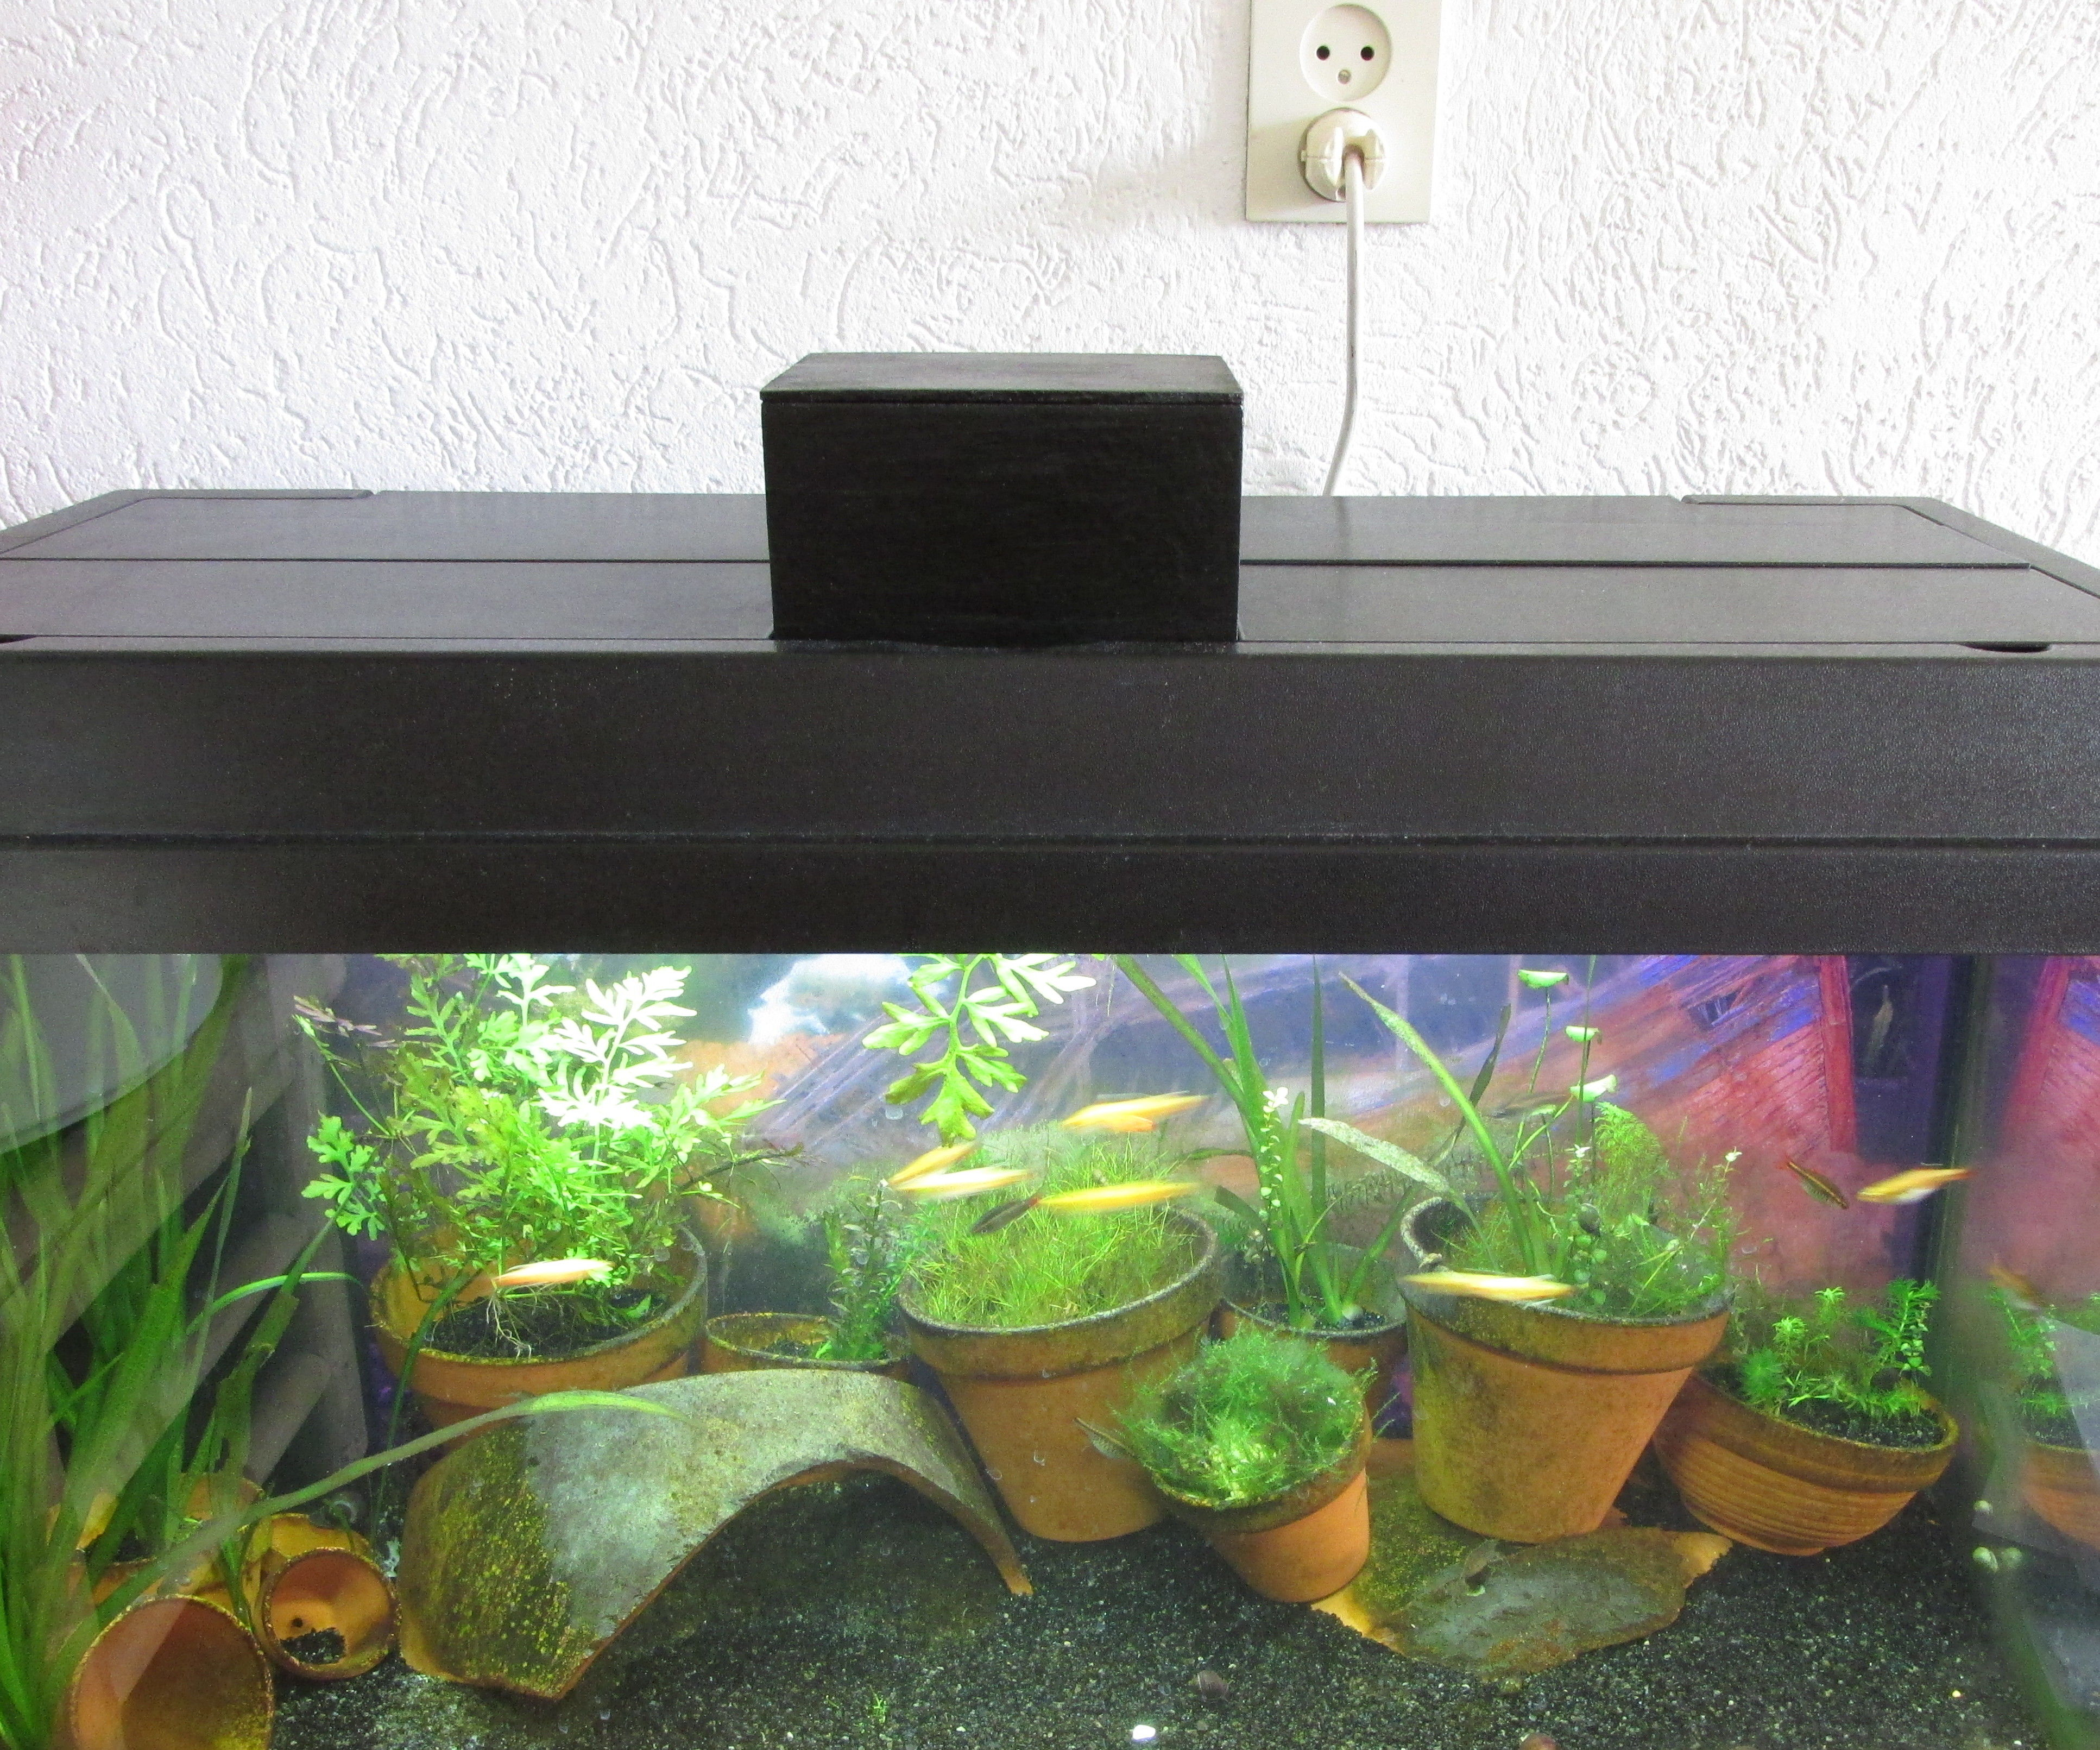 Fish Feeder Arduino Raspberry Pi Link: 7 Steps (with Pictures)